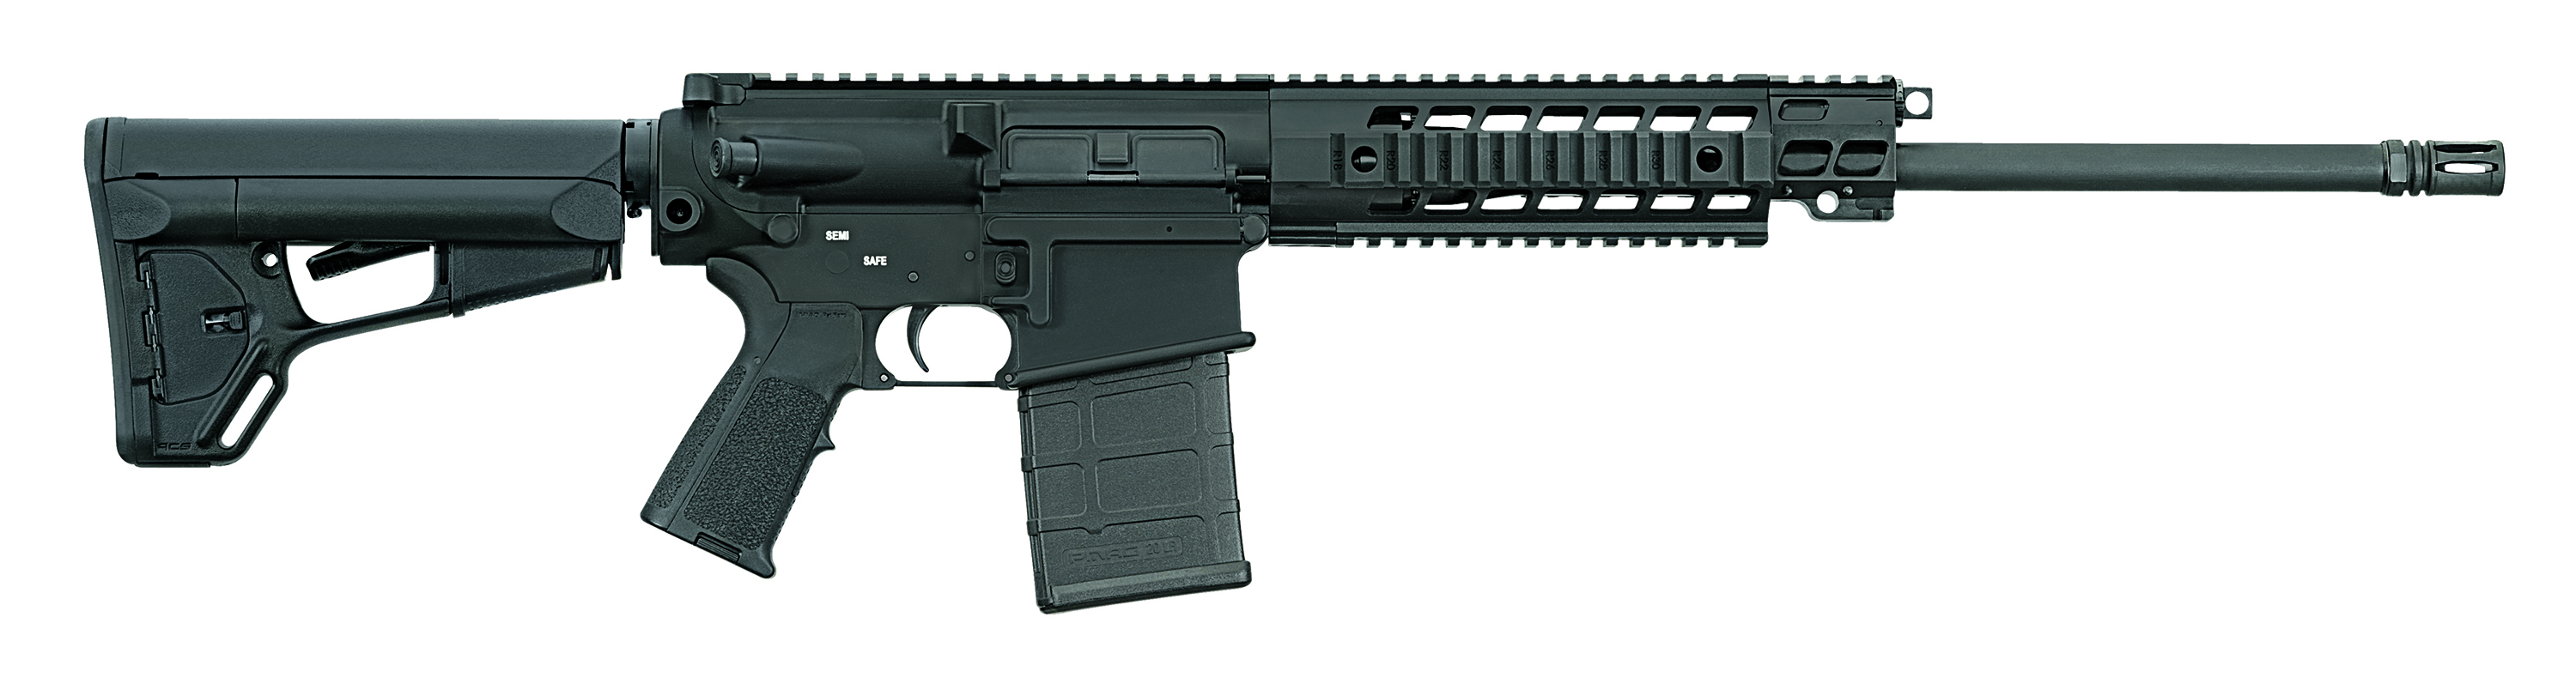 A black SIG 716, Patrol Model Carbine, with the barrel pointed to the right on a white background.